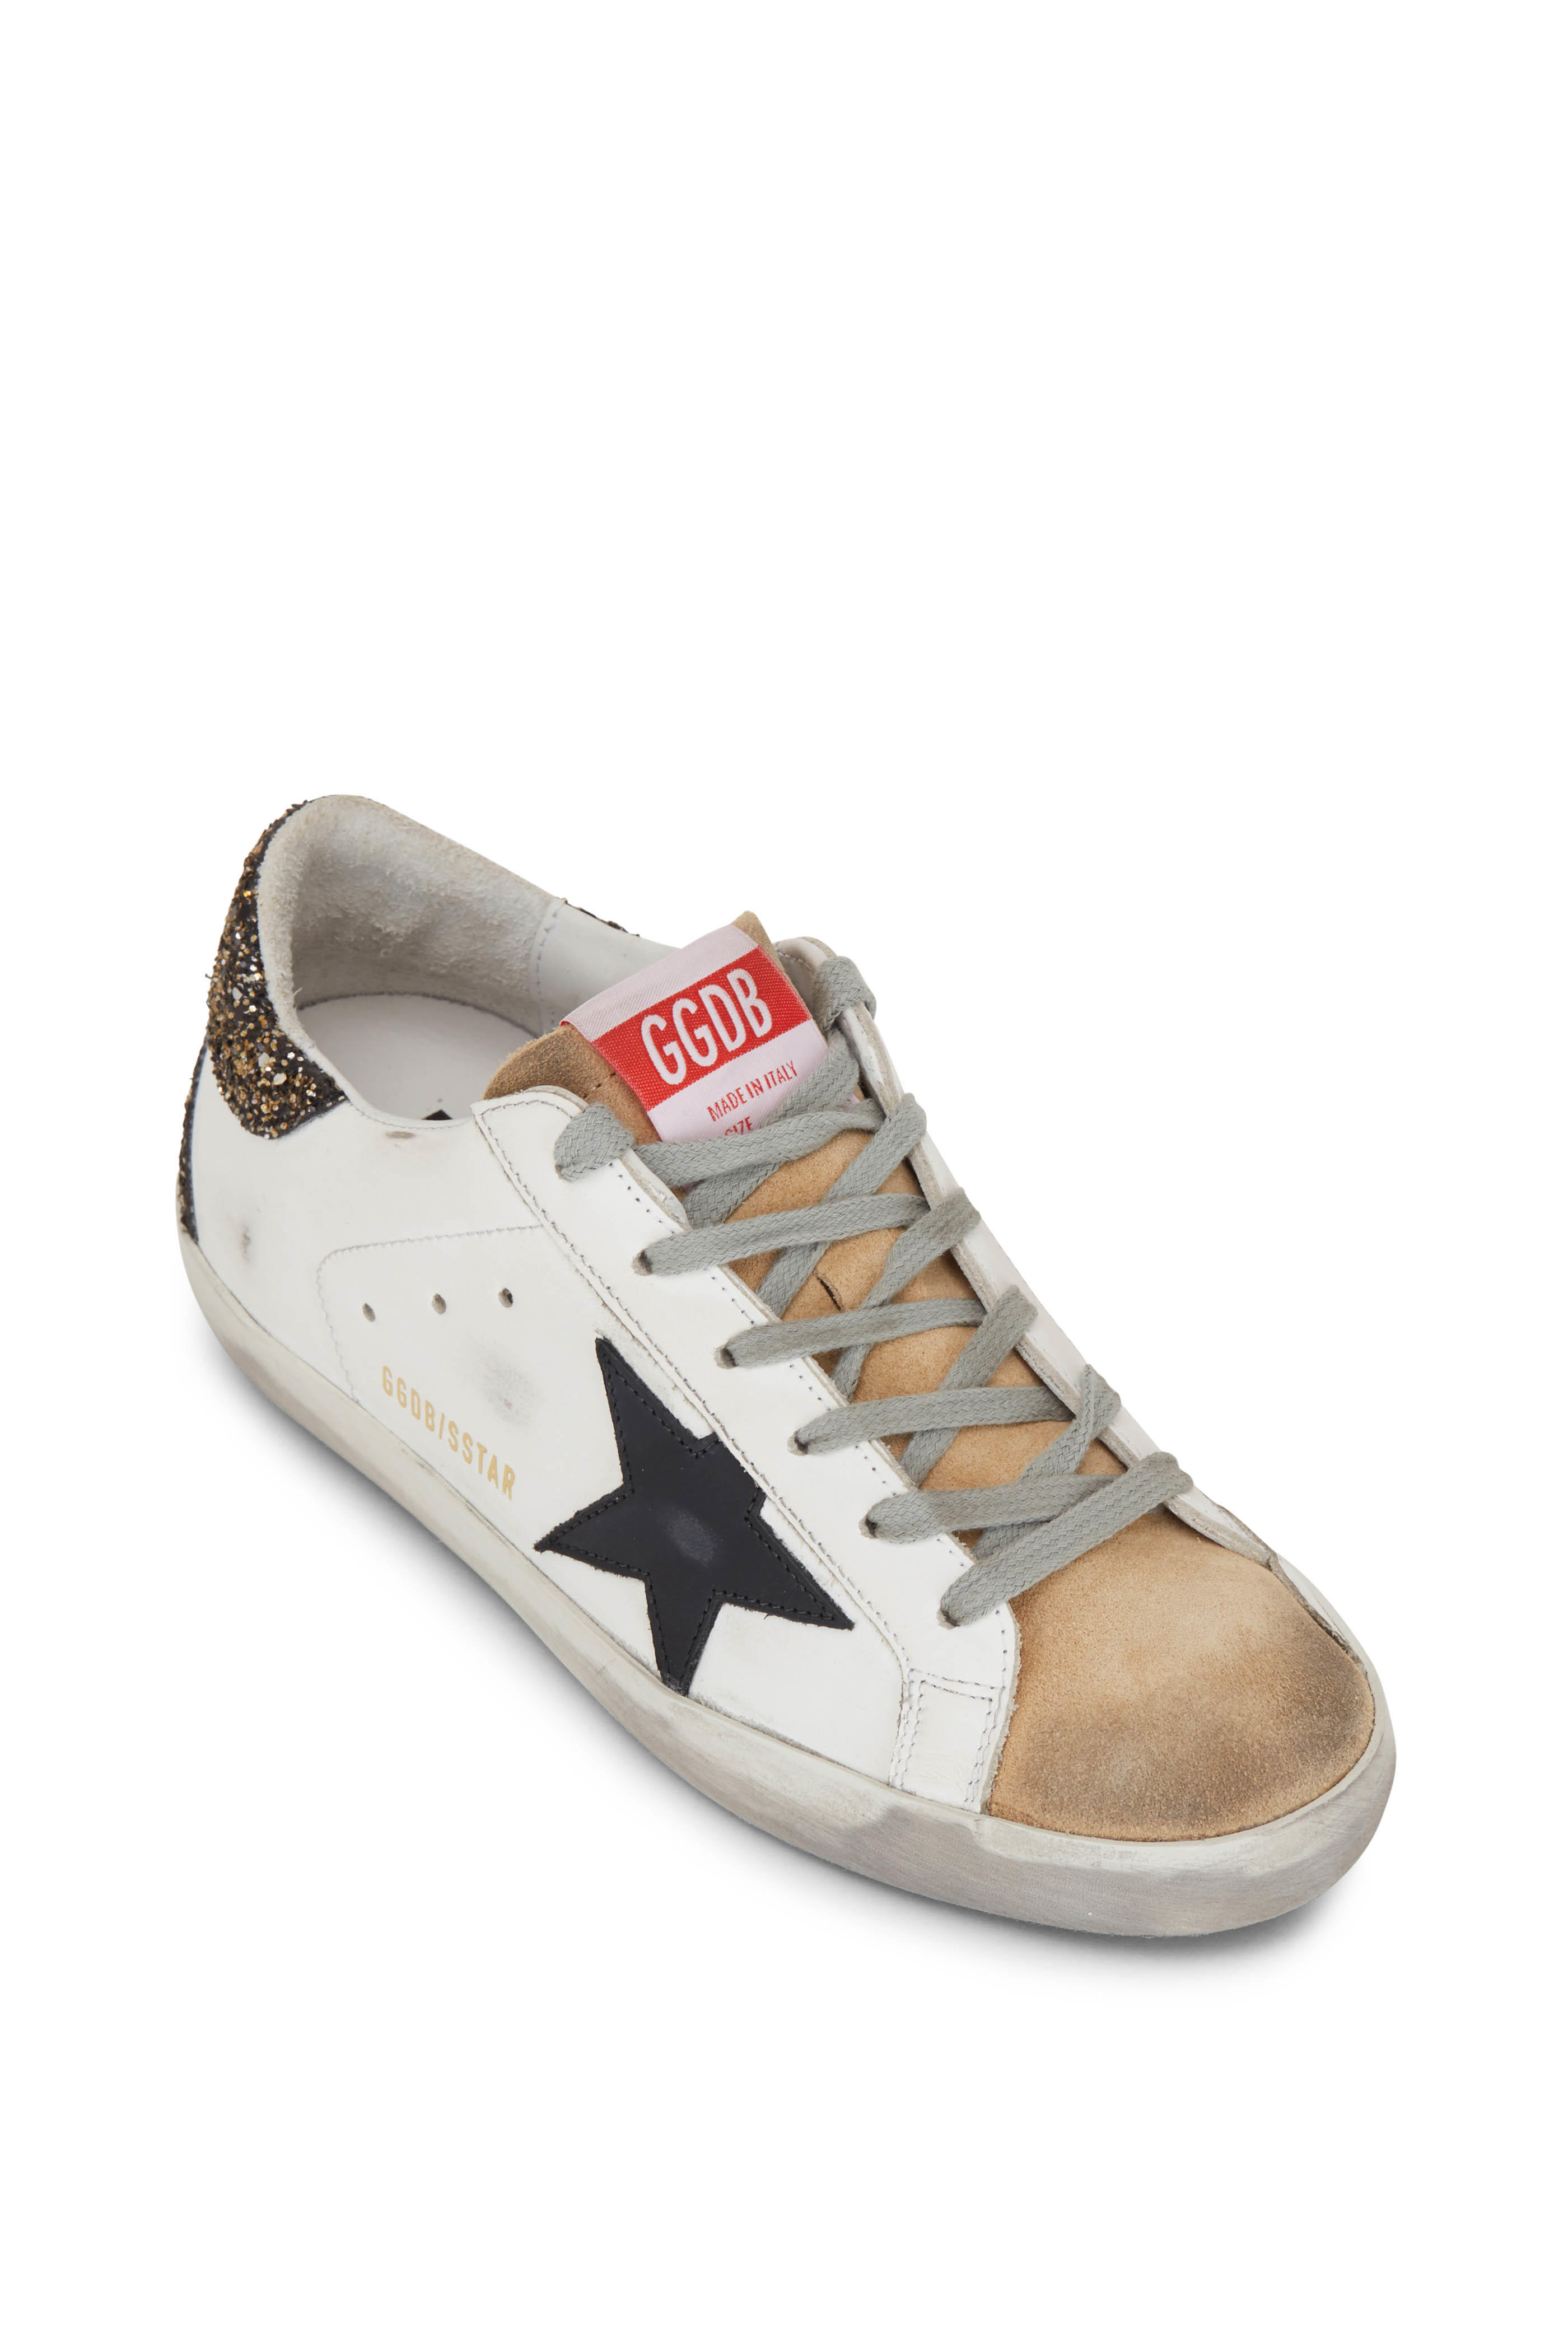 Superstar White & Bronze Leather Low-Top Sneaker